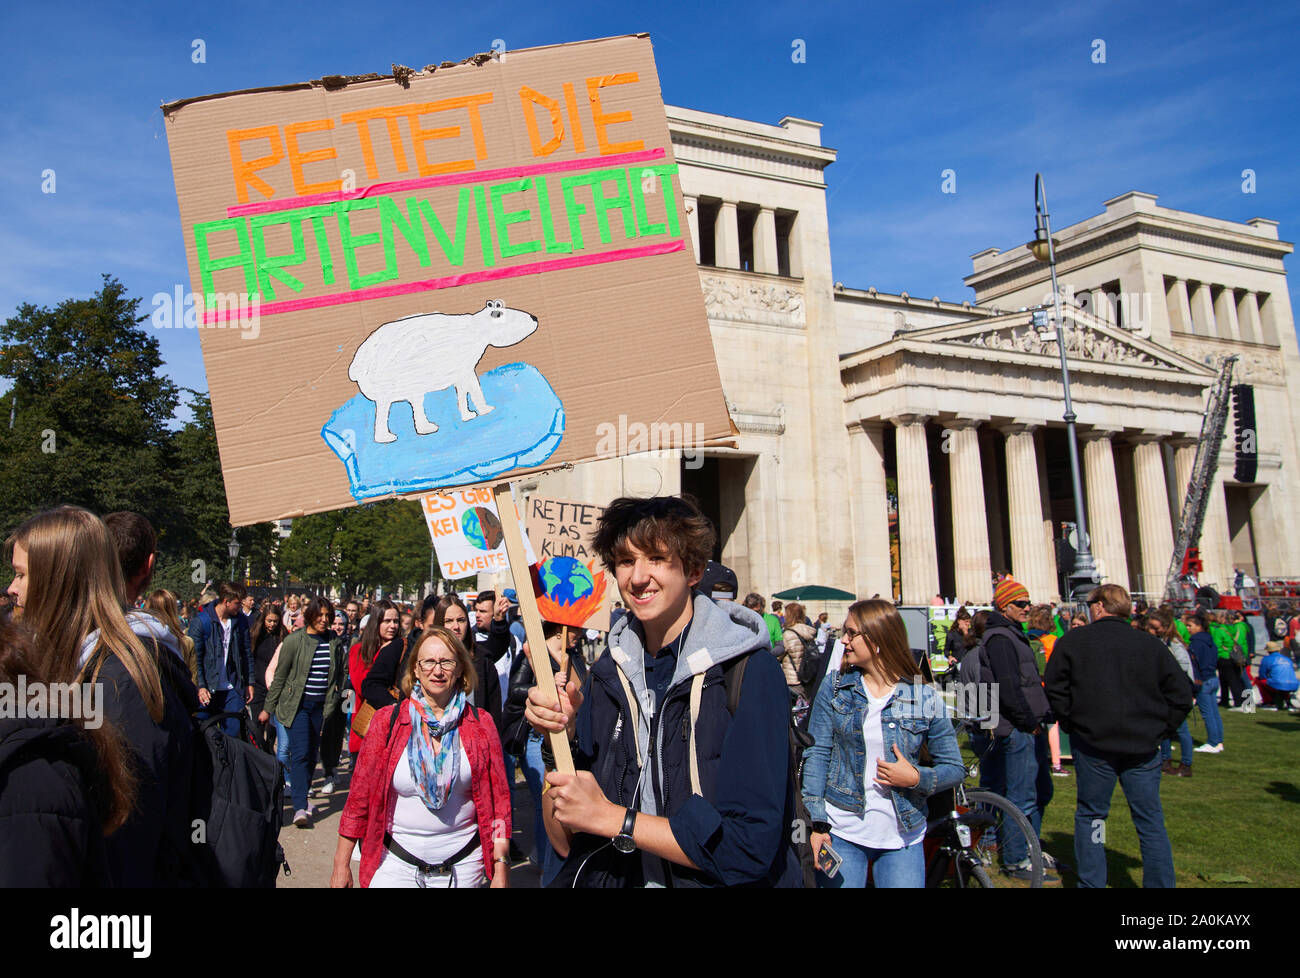 """Munich, Germany. 20th Sep, 2019. People demonstrate as International Solidarity Movement """" Friday for Future """" on the Königsplatz to save the climate in Munich, Germany, September 20, 2019. Credit: Peter Schatz/Alamy Live News Stock Photo"""